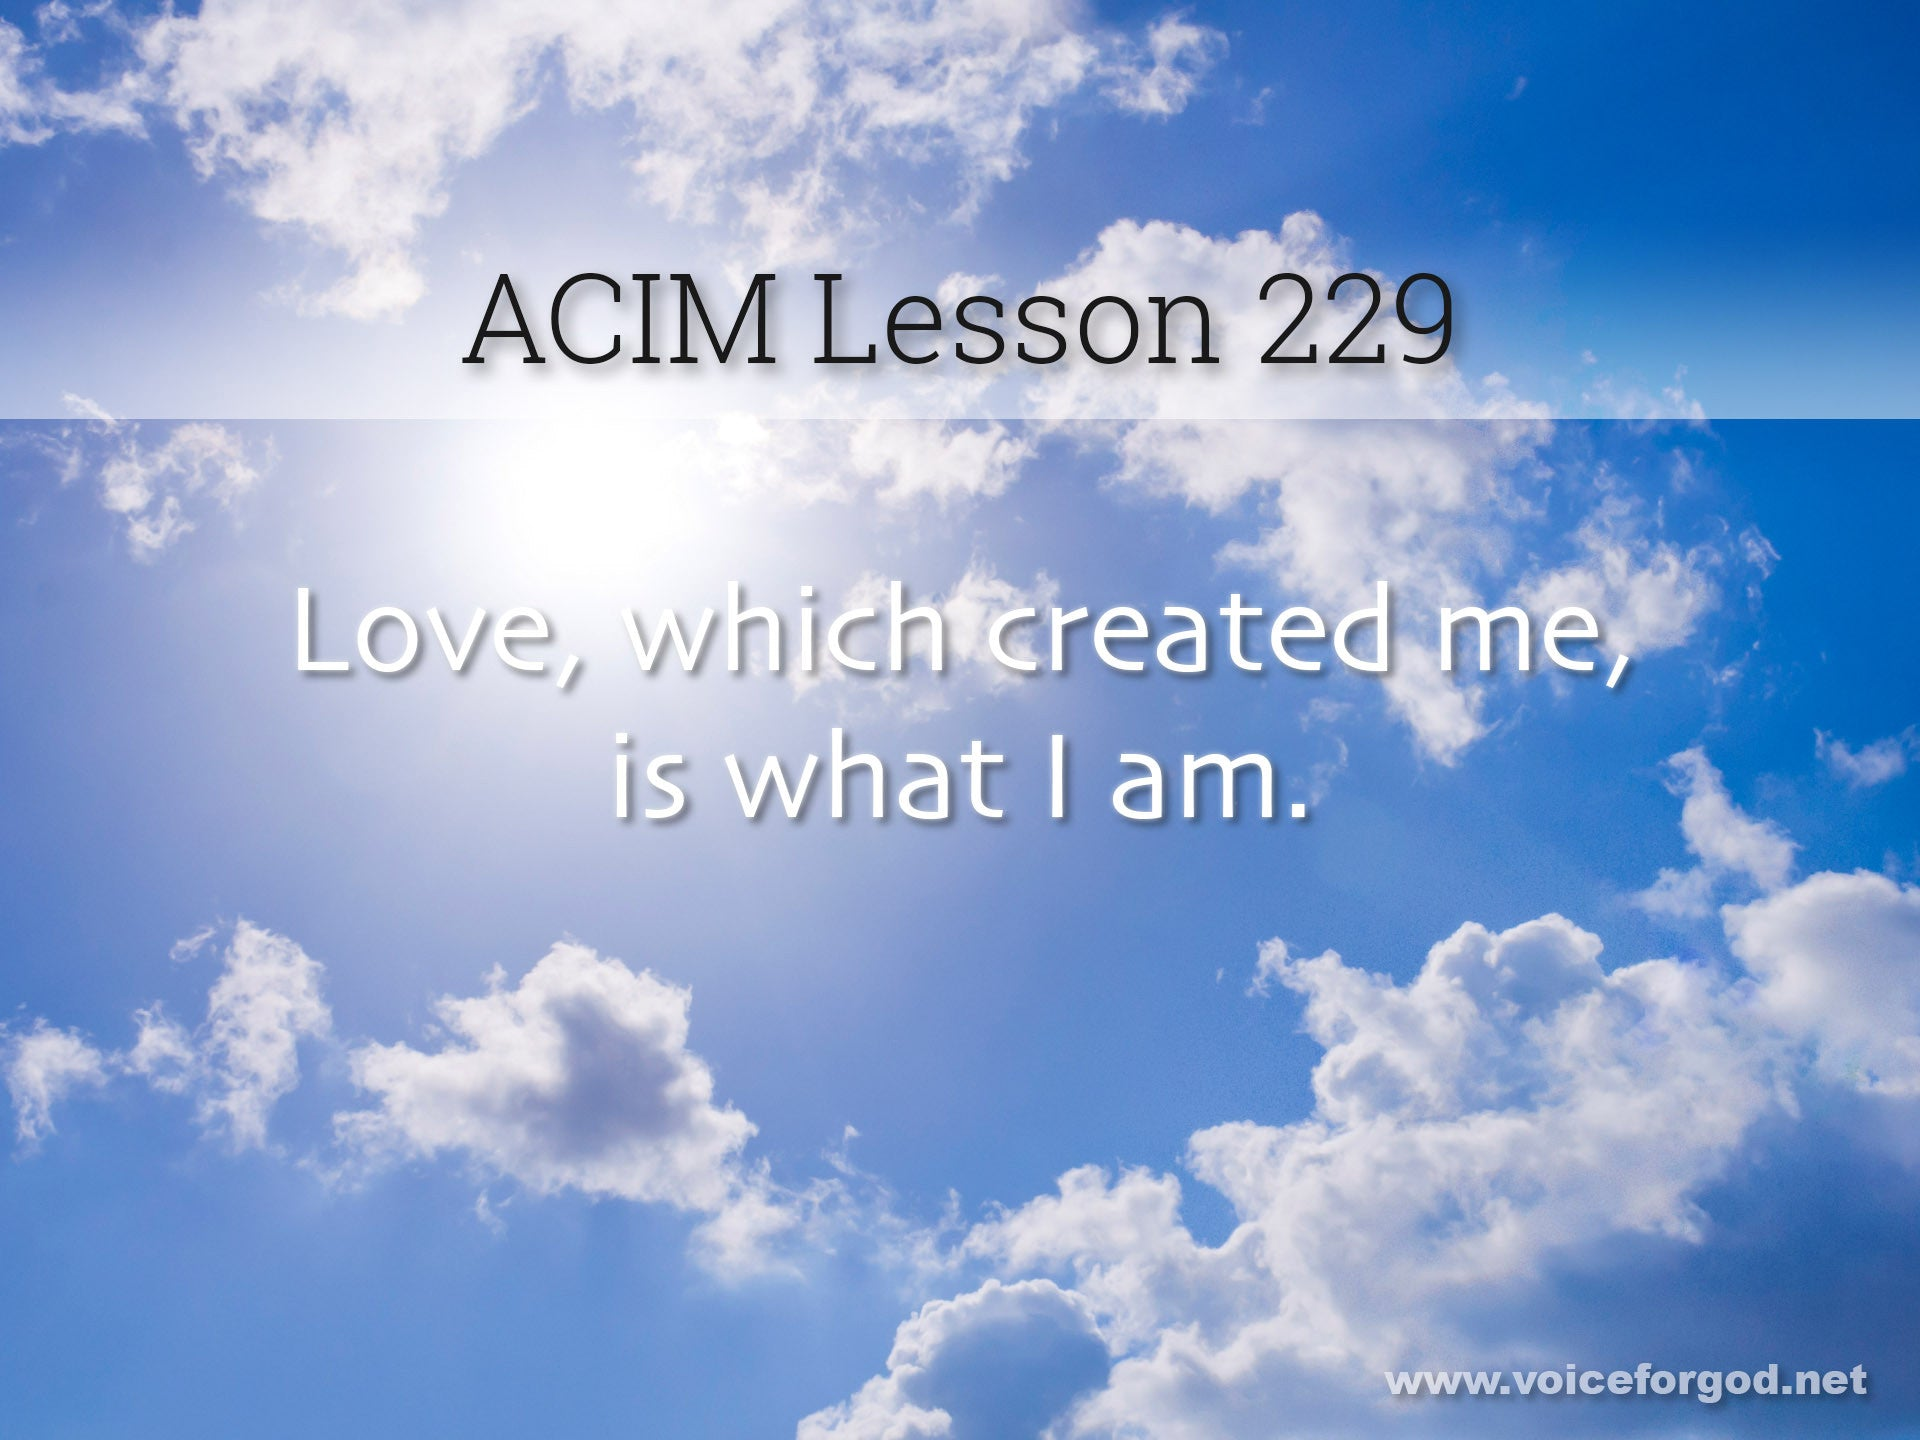 ACIM Lesson 229 - A Course in Miracles Workbook Lesson 229